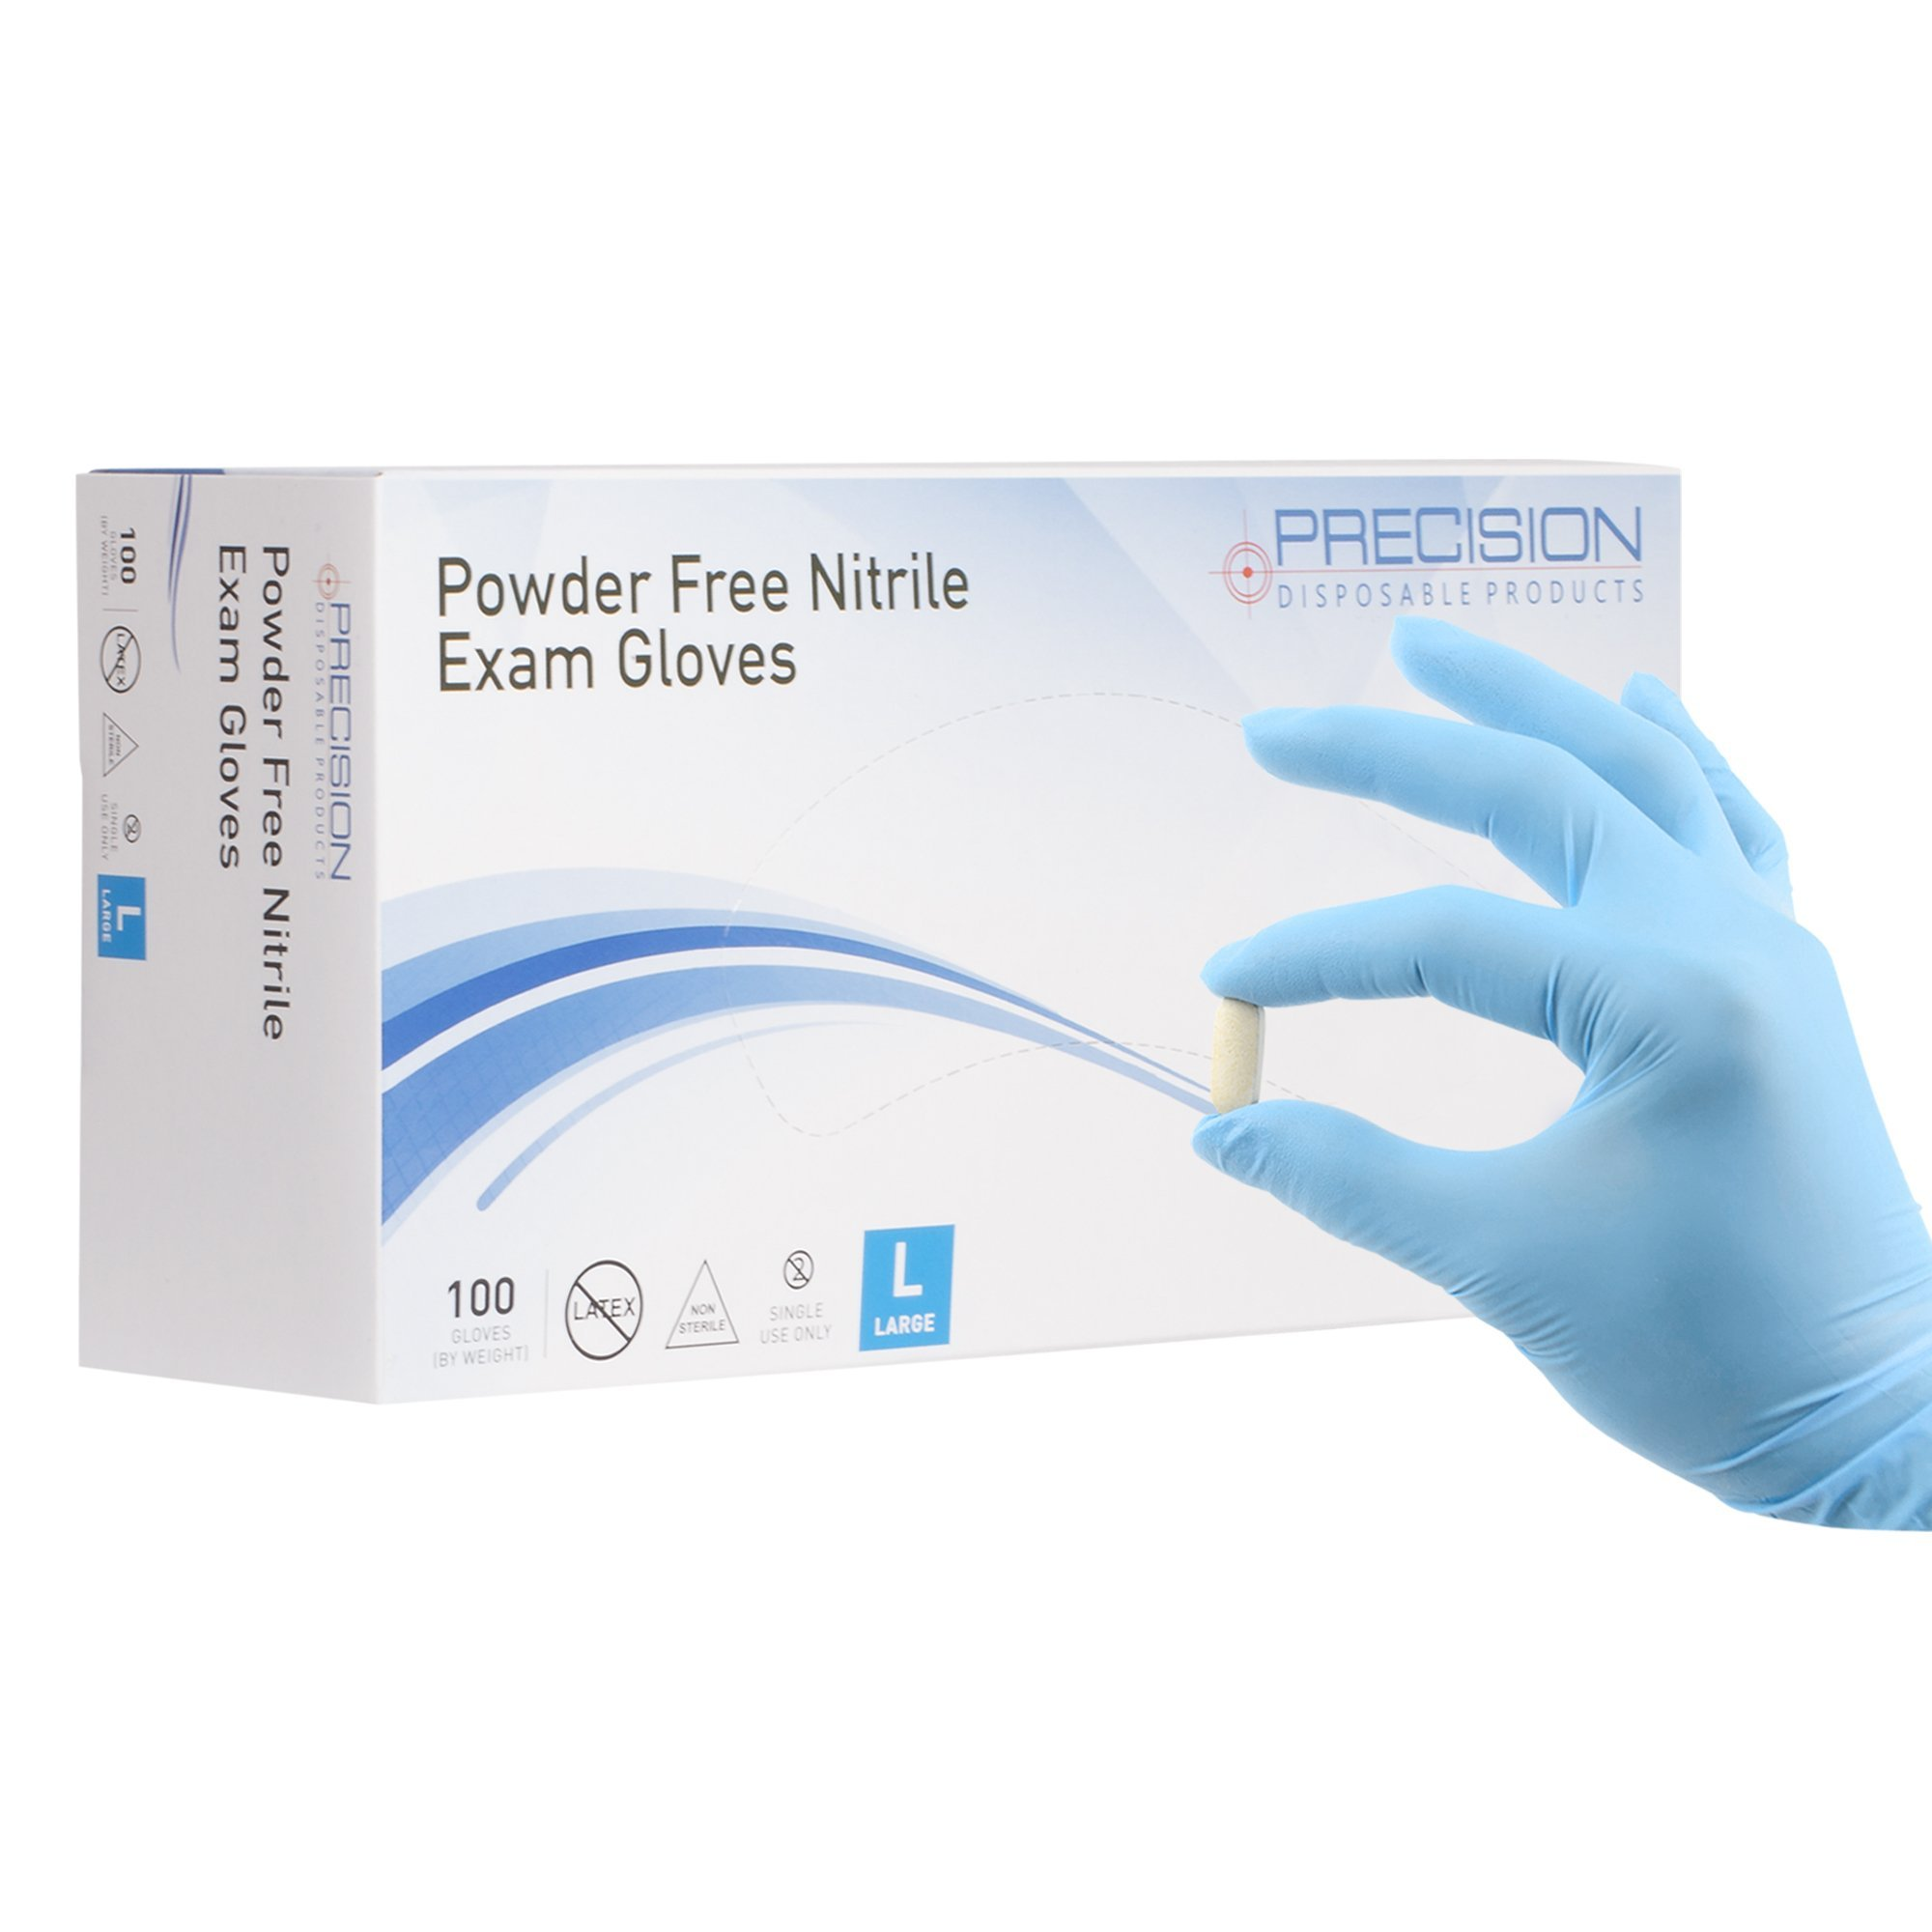 Nitrile Exam Gloves by Precision Disposables | Blue Large 4 mil Thickness, Powder-Free, Non-Latex, Fingertip-Textured, Medical Grade, Food Safe Examination Gloves (Pack of 100)